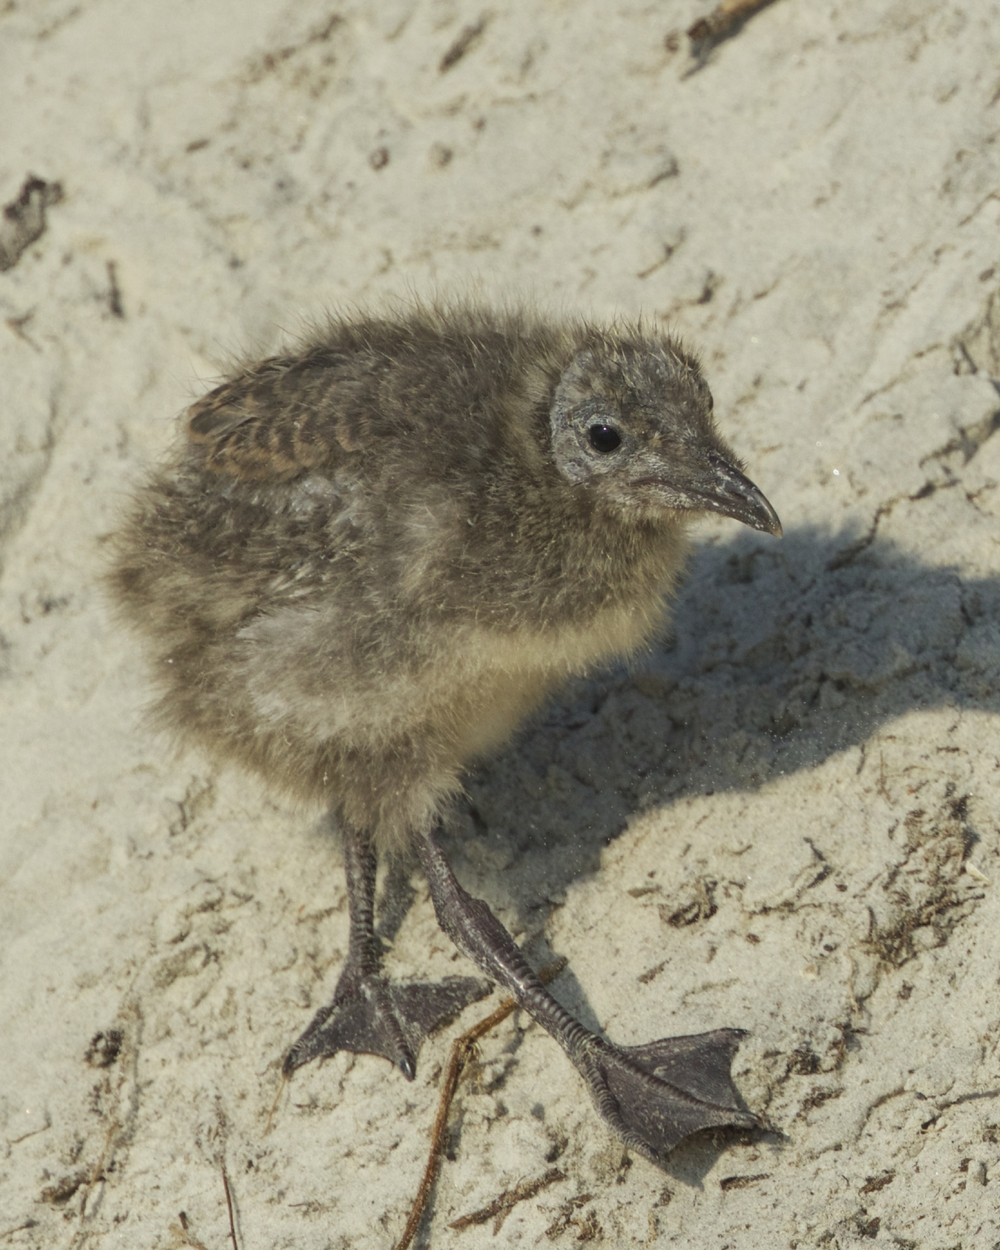 When the parents leave to find food often the chicks will climb down the dunes onto the beach and wait for food.